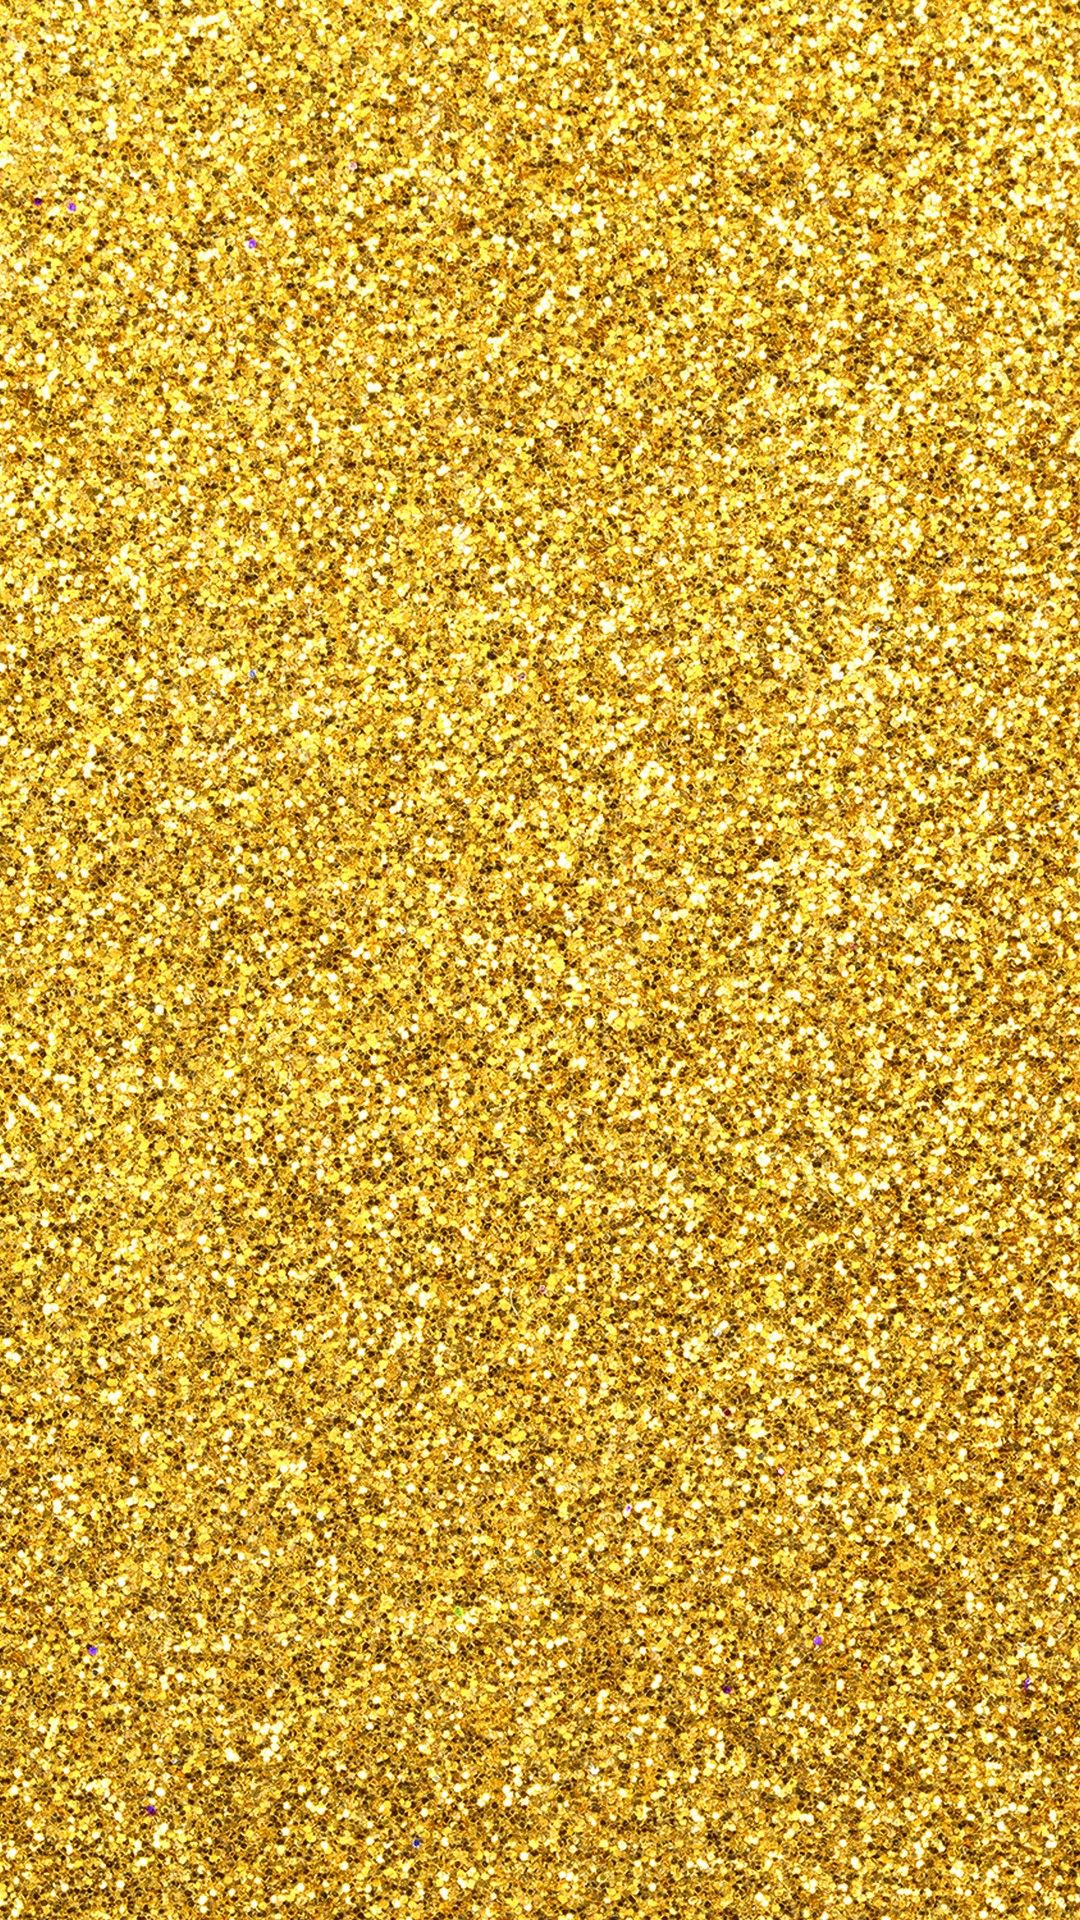 Gold Glitter Wallpaper iPhone | ️gℓιттєя ️ | Iphone ...